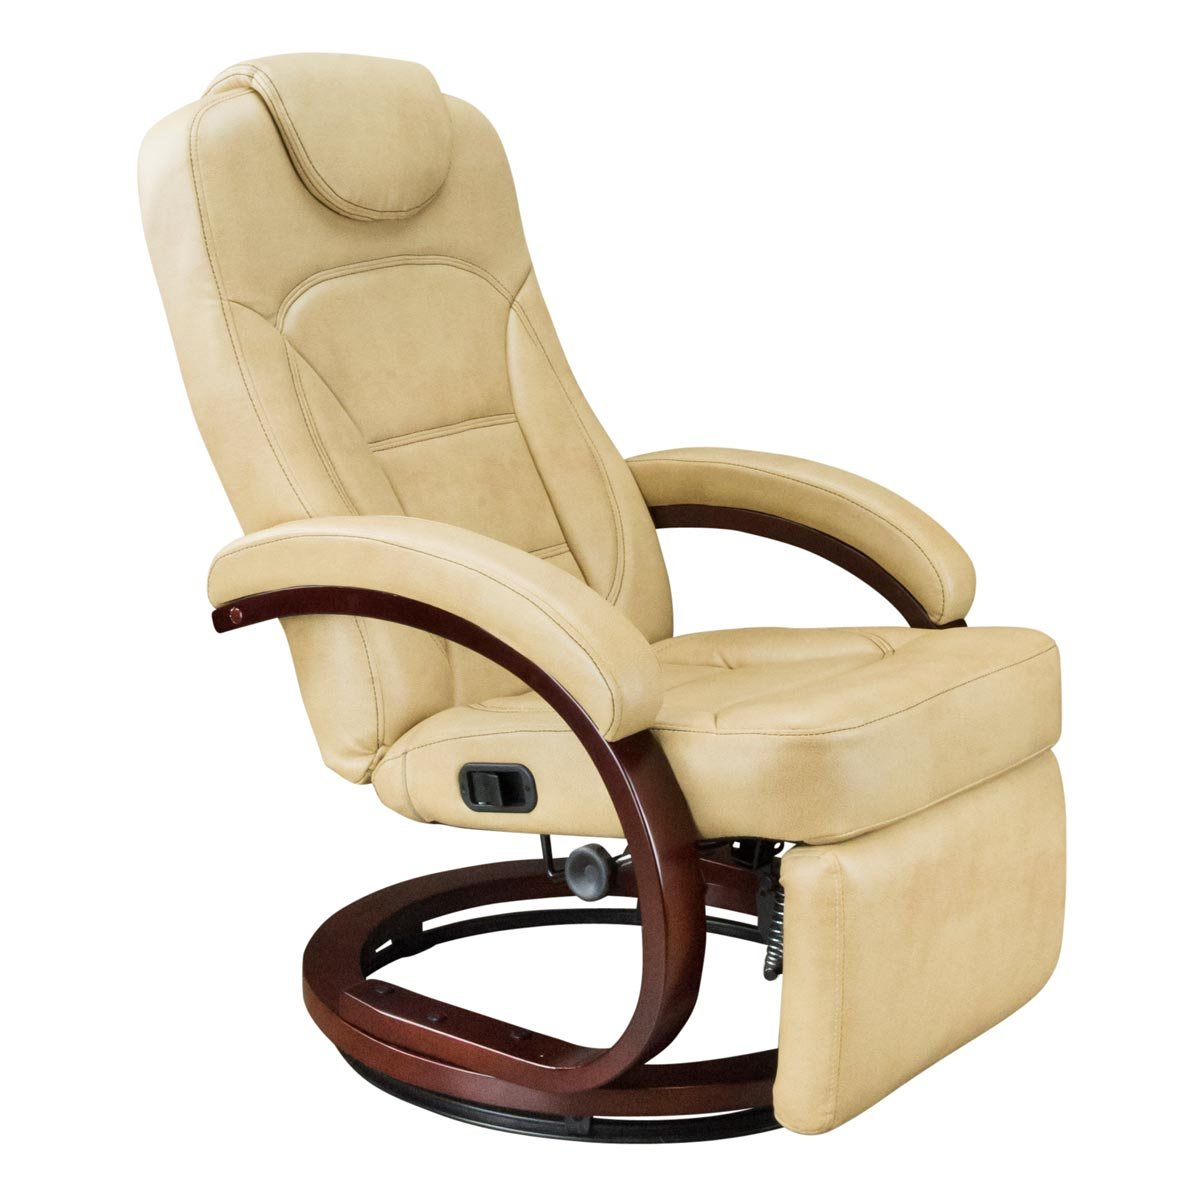 Amazon.com Thomas Payne 3477221 Alternate Latte Euro Chair Automotive  sc 1 st  Amazon.com & Amazon.com: Thomas Payne 3477221 Alternate Latte Euro Chair ... islam-shia.org